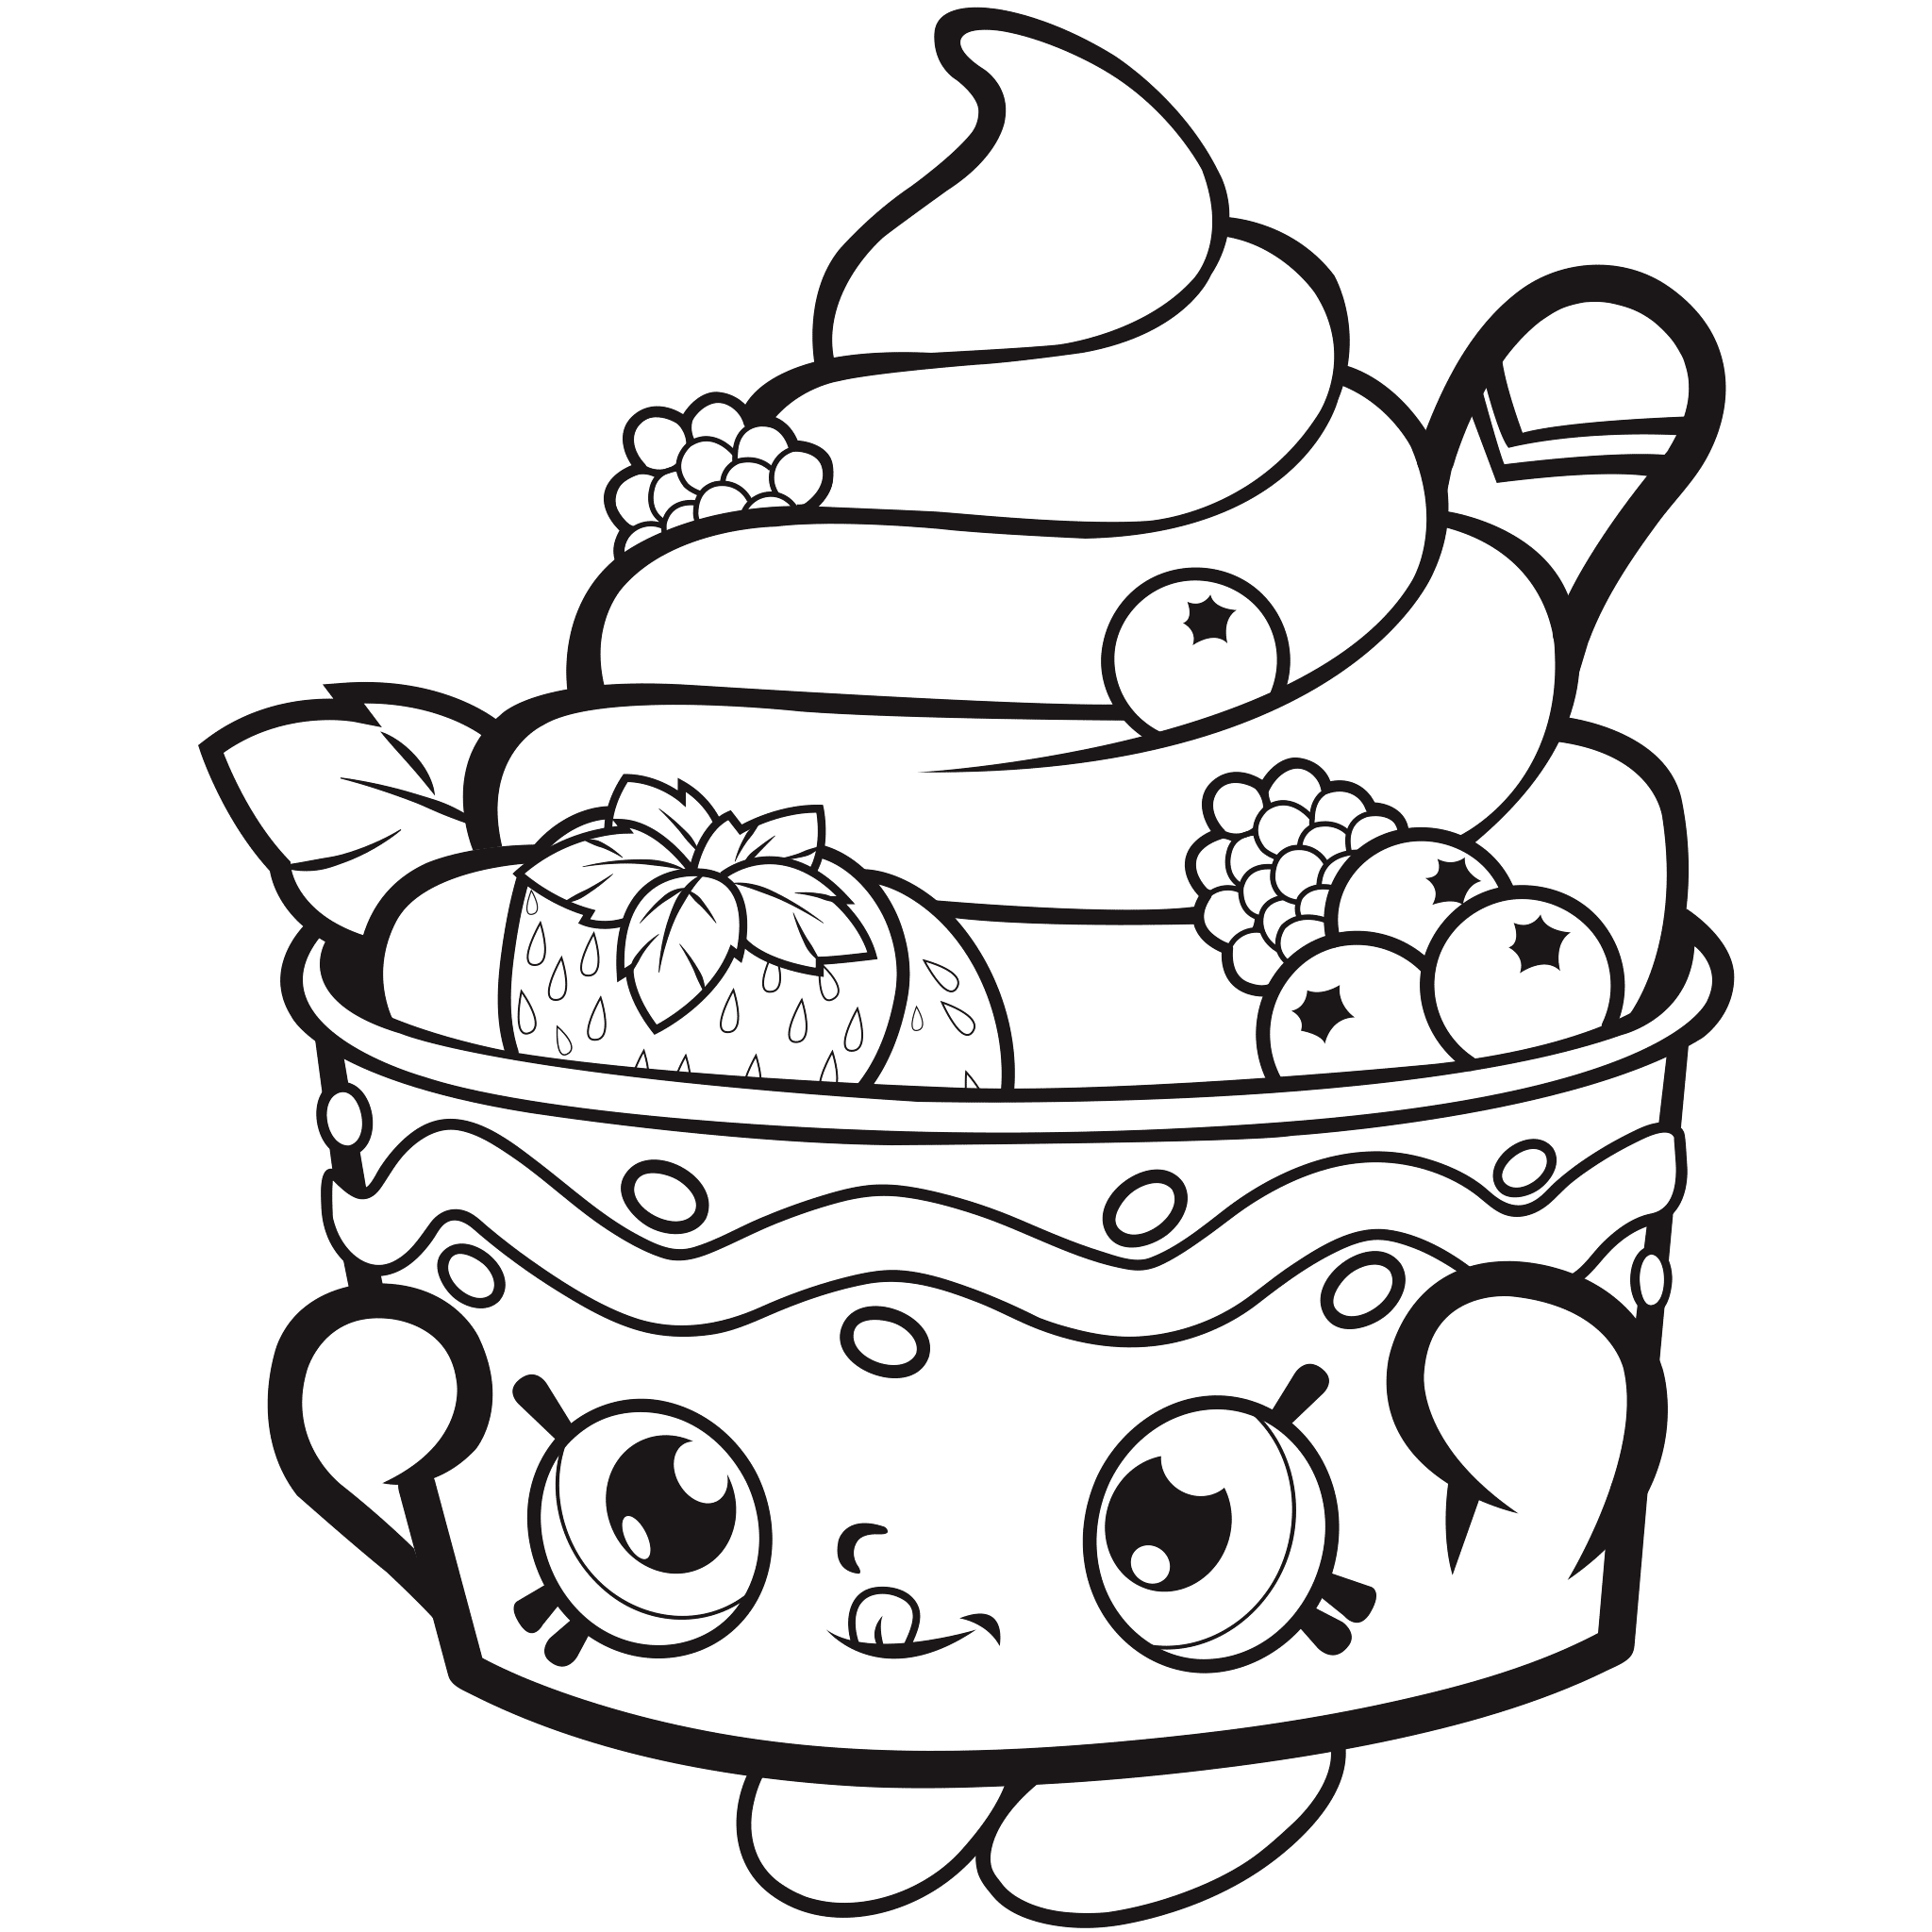 Shopkins coloring pages best coloring pages for kids for Lipstick shopkins coloring page